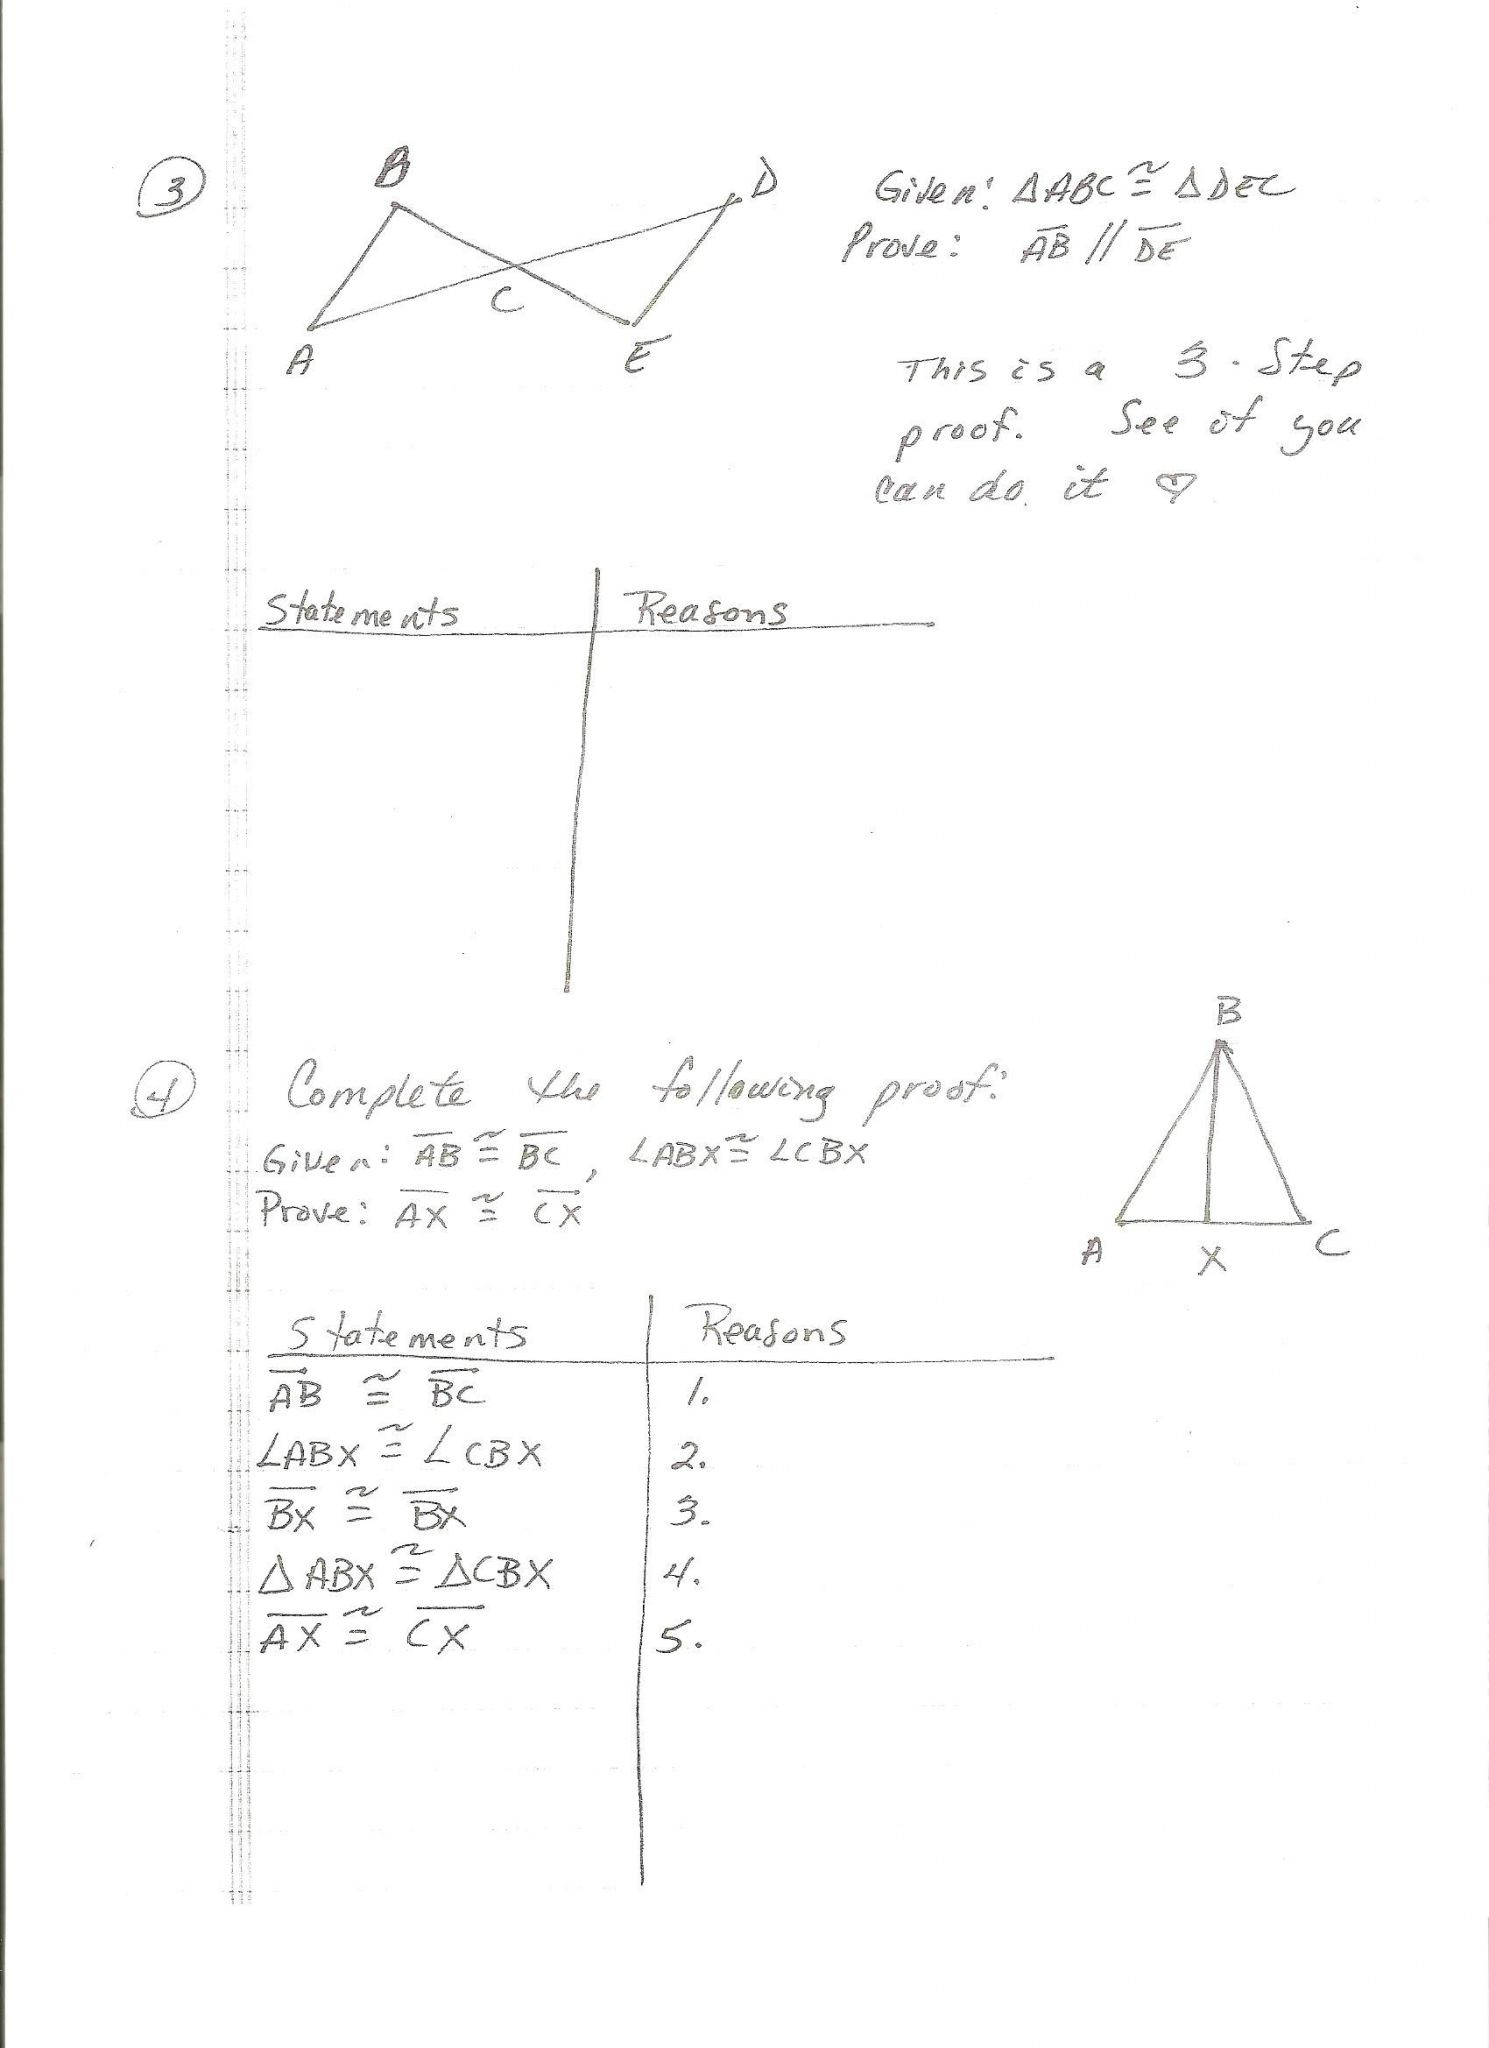 Proofs Worksheet 1 Answers Db Excel